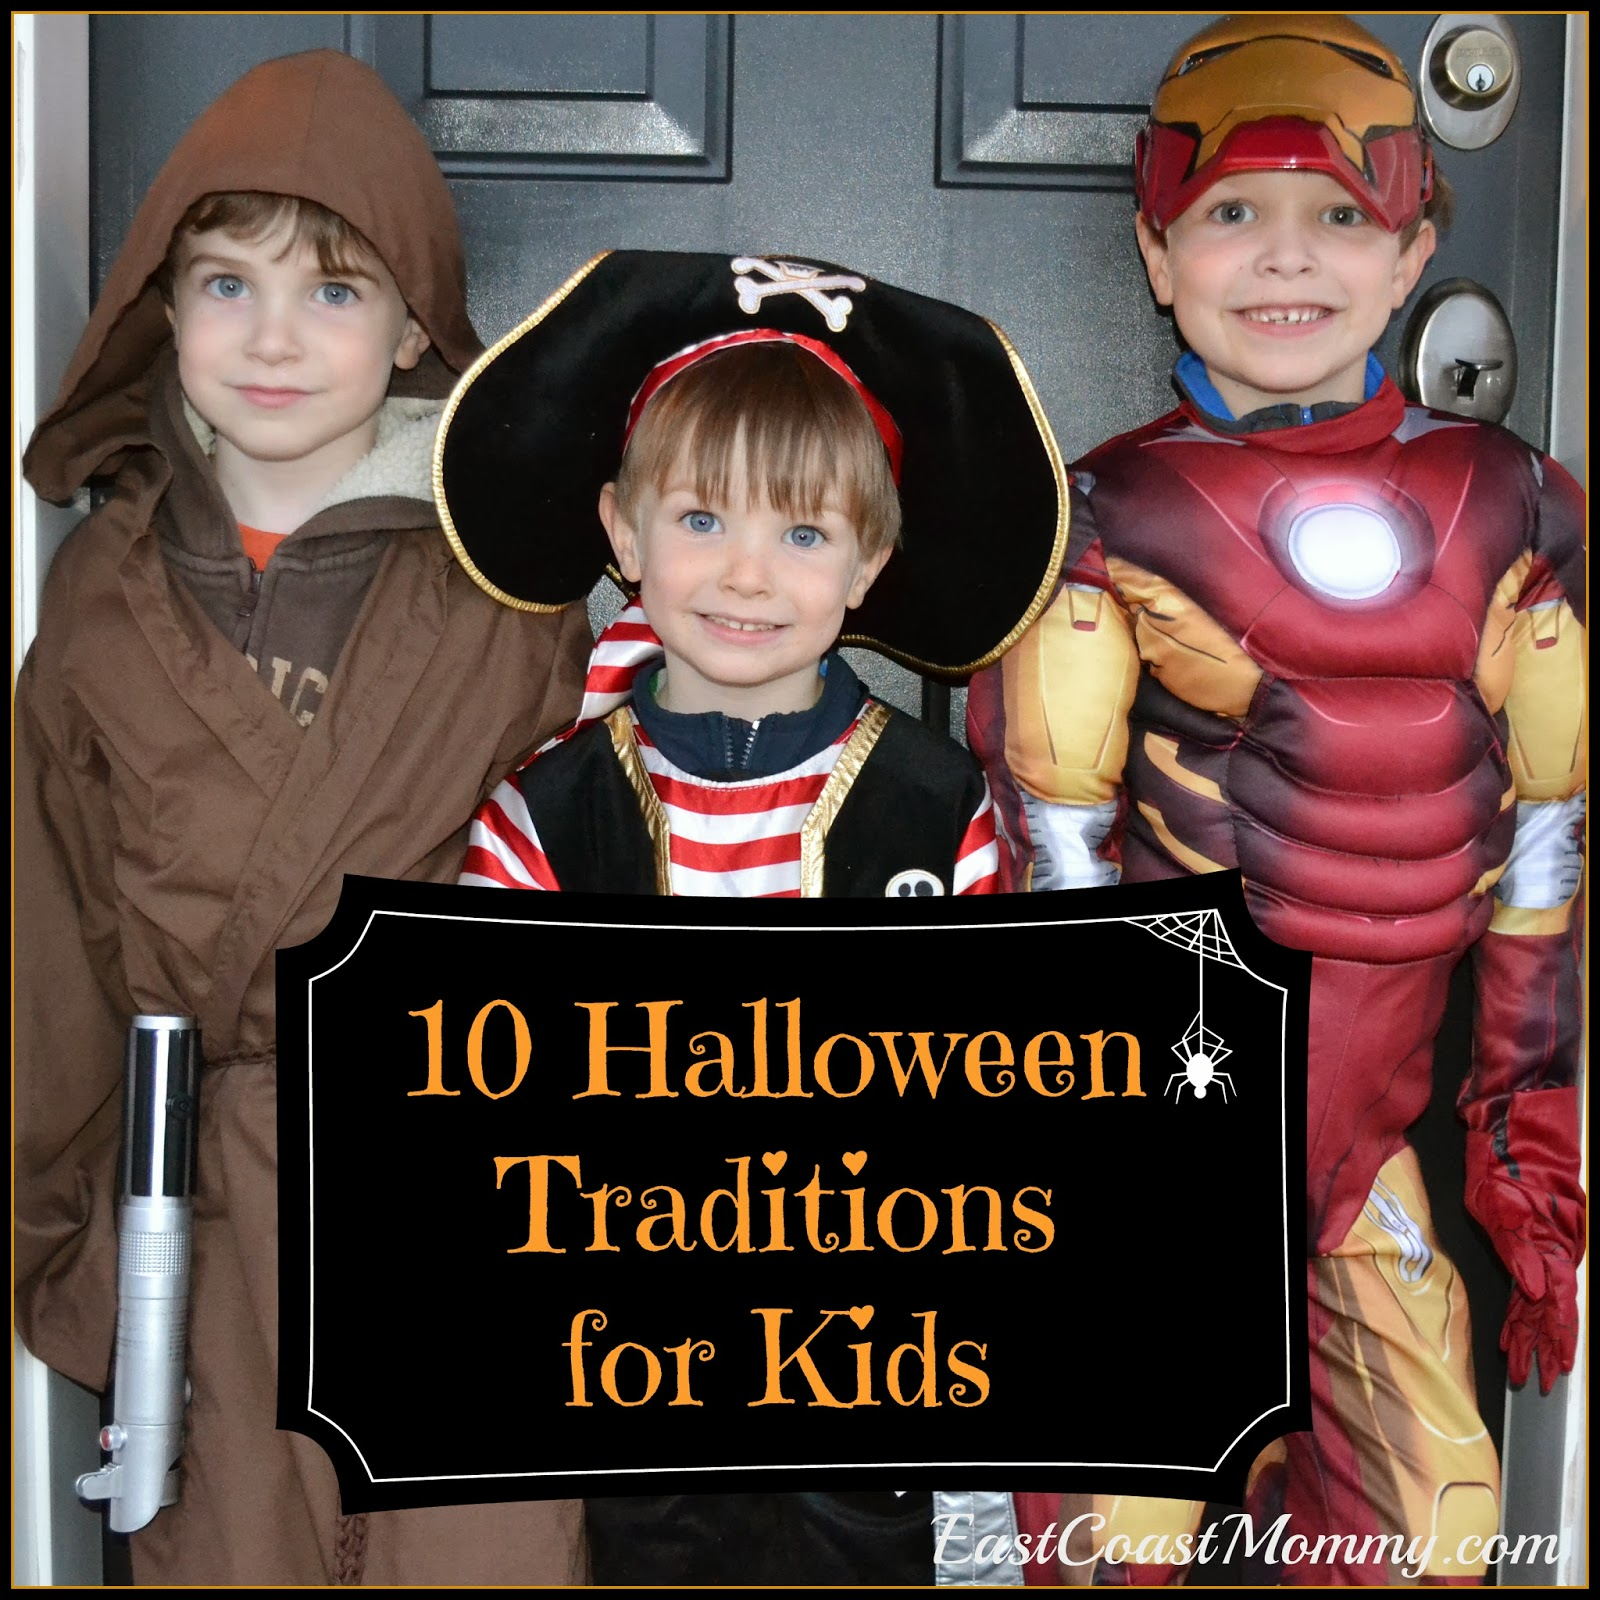 East Coast Mommy: 10 Halloween Traditions for Kids